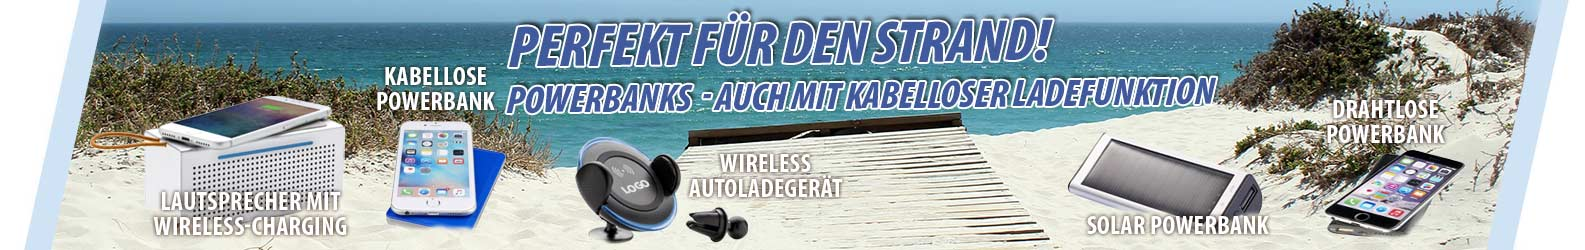 Kabelloses Laden mit Wireless Charging Powerbanks